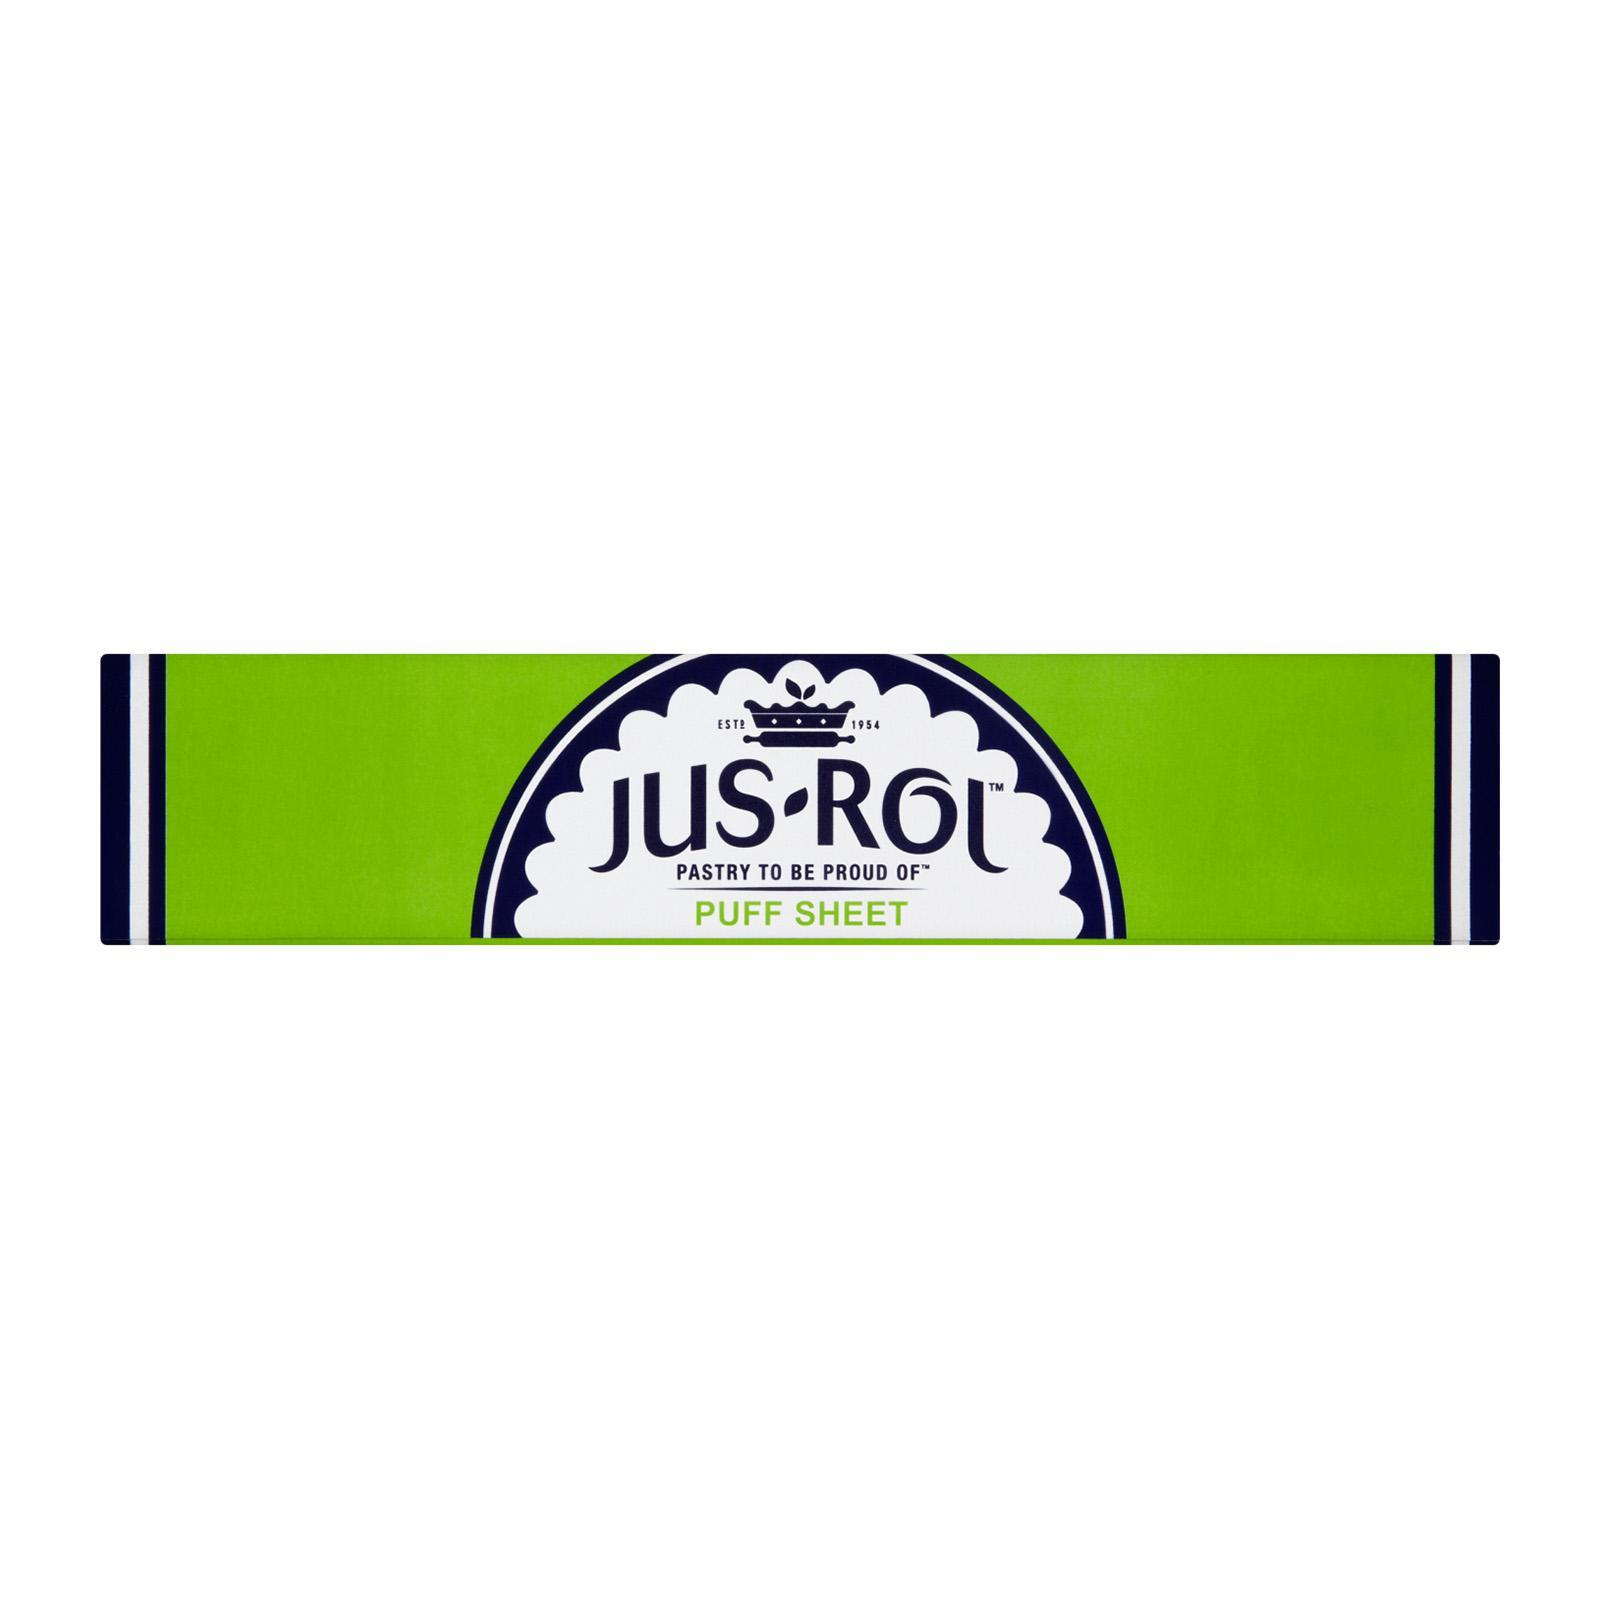 Jus-Rol Puff Pastry Sheet By Redmart.